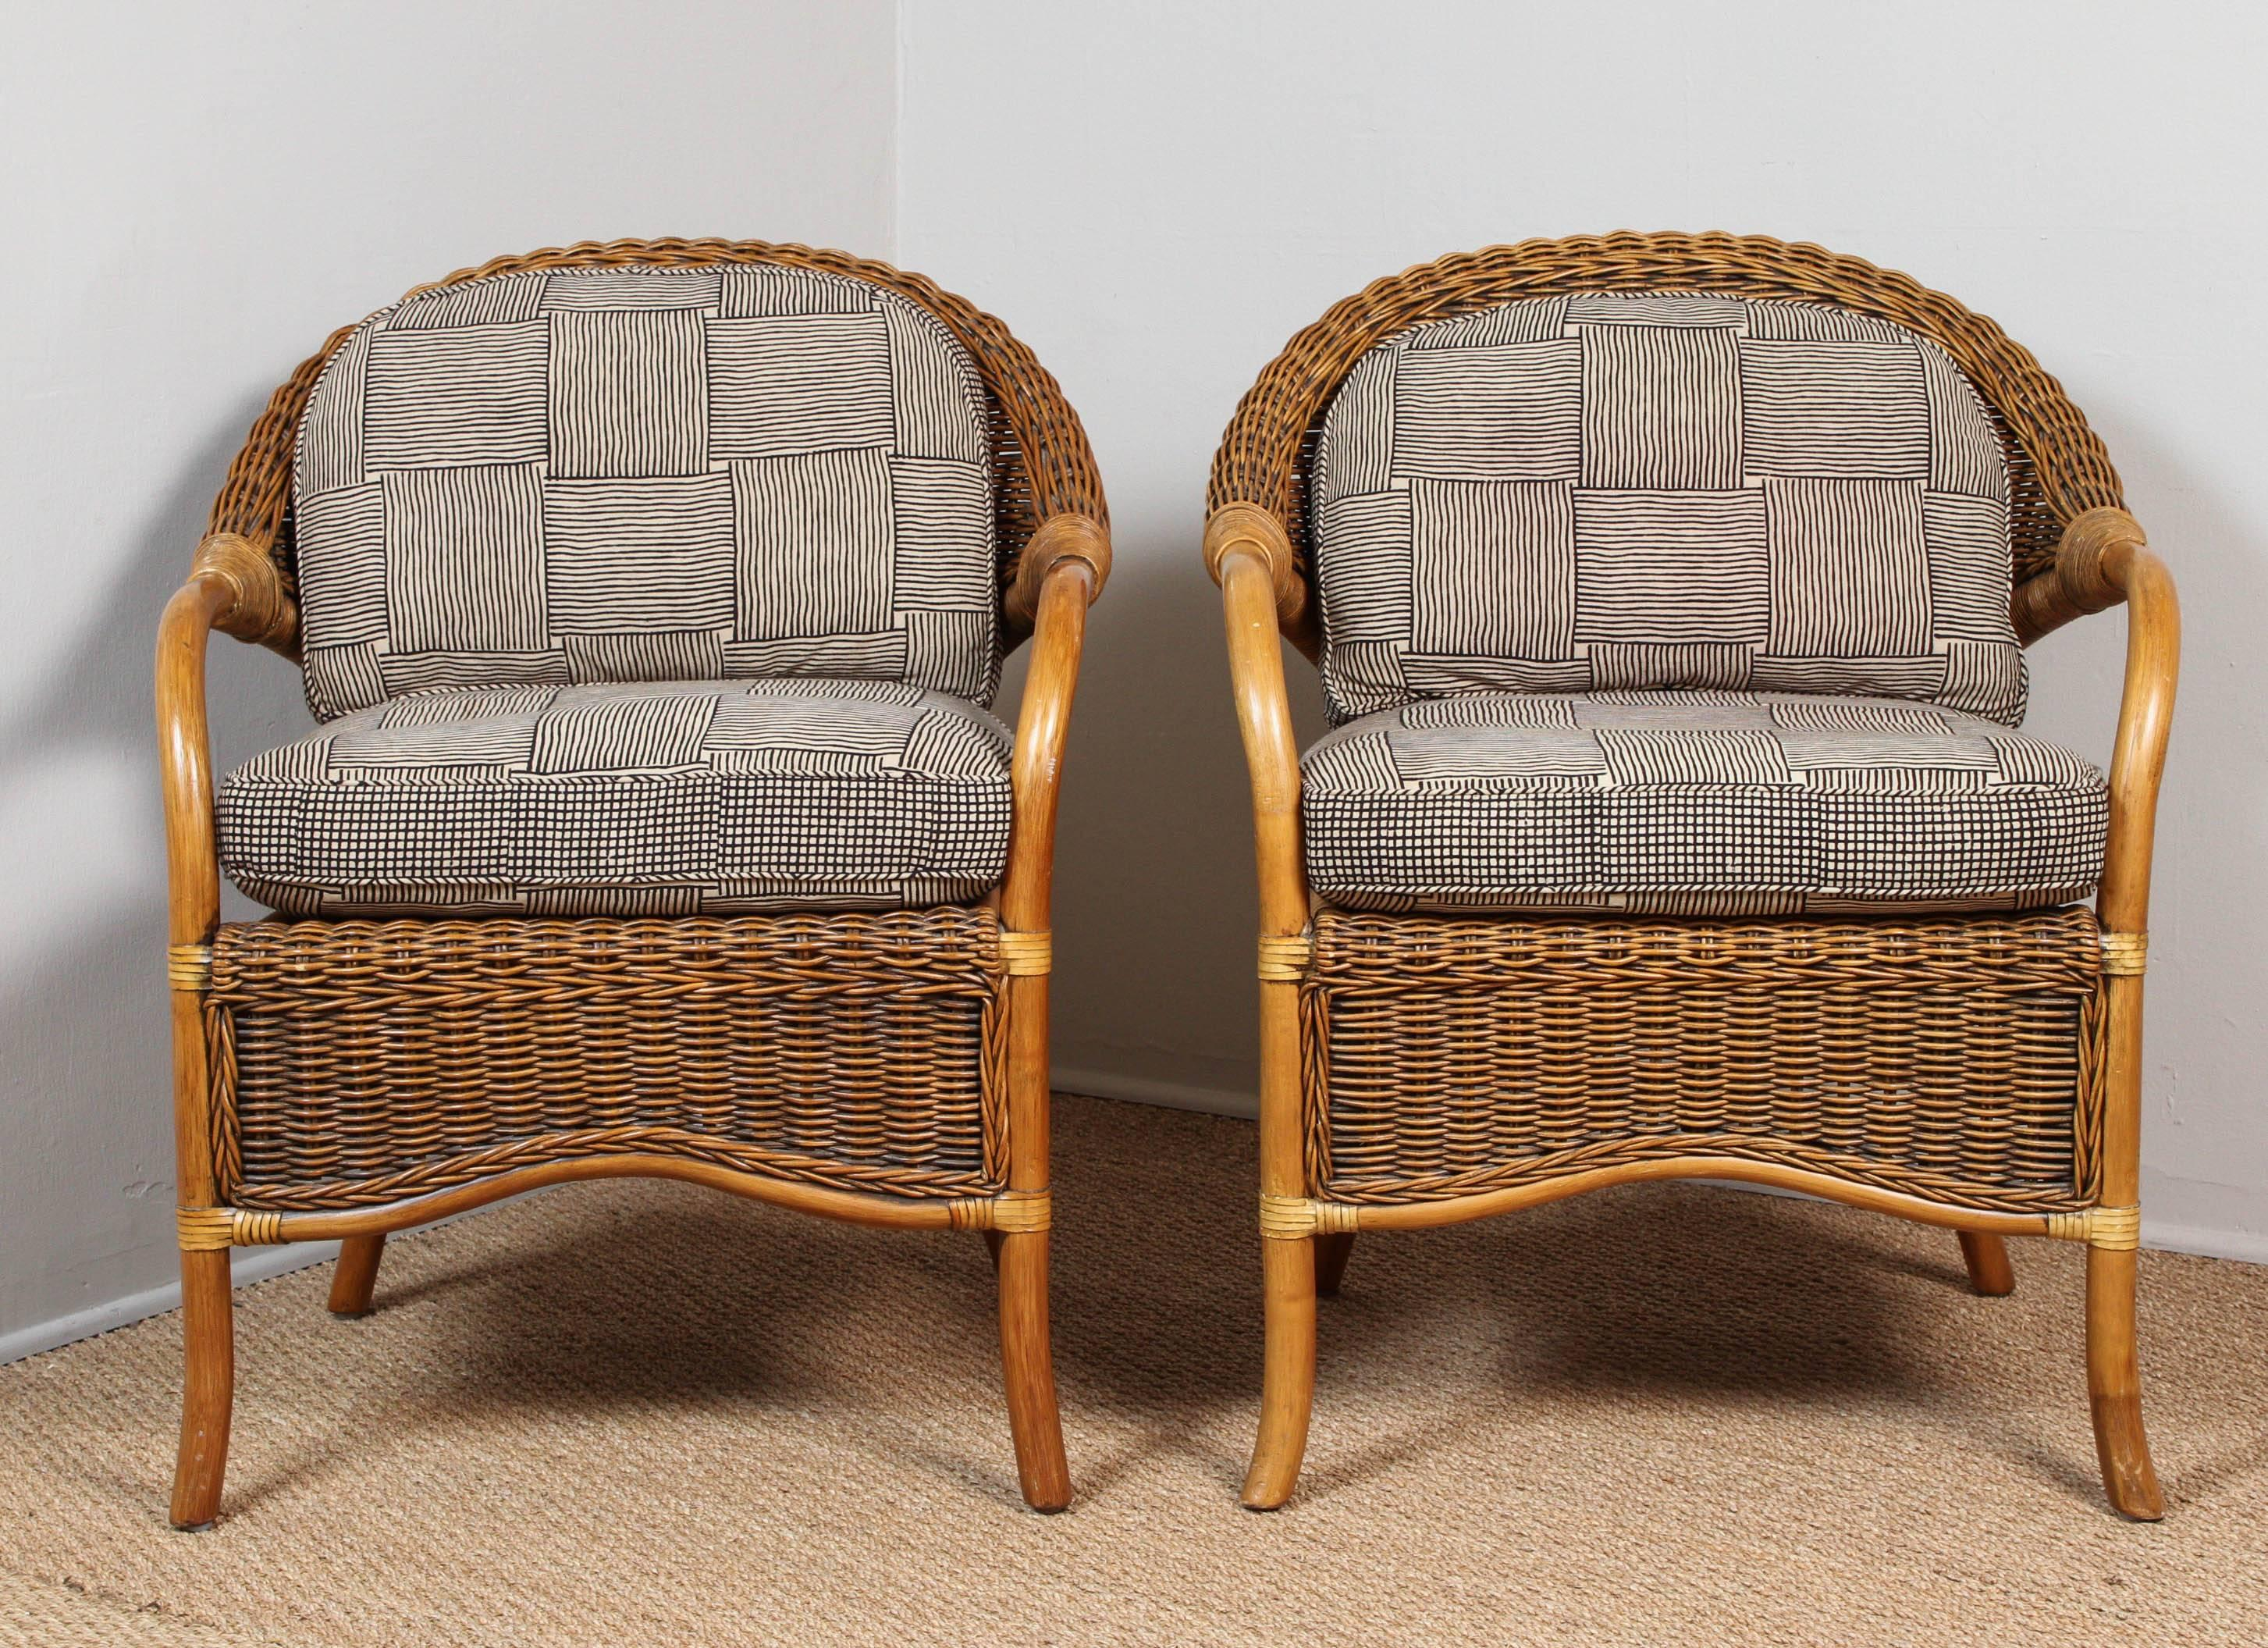 Rattan Lounge Chair Philippines Rattan Lounge Chair Philippines